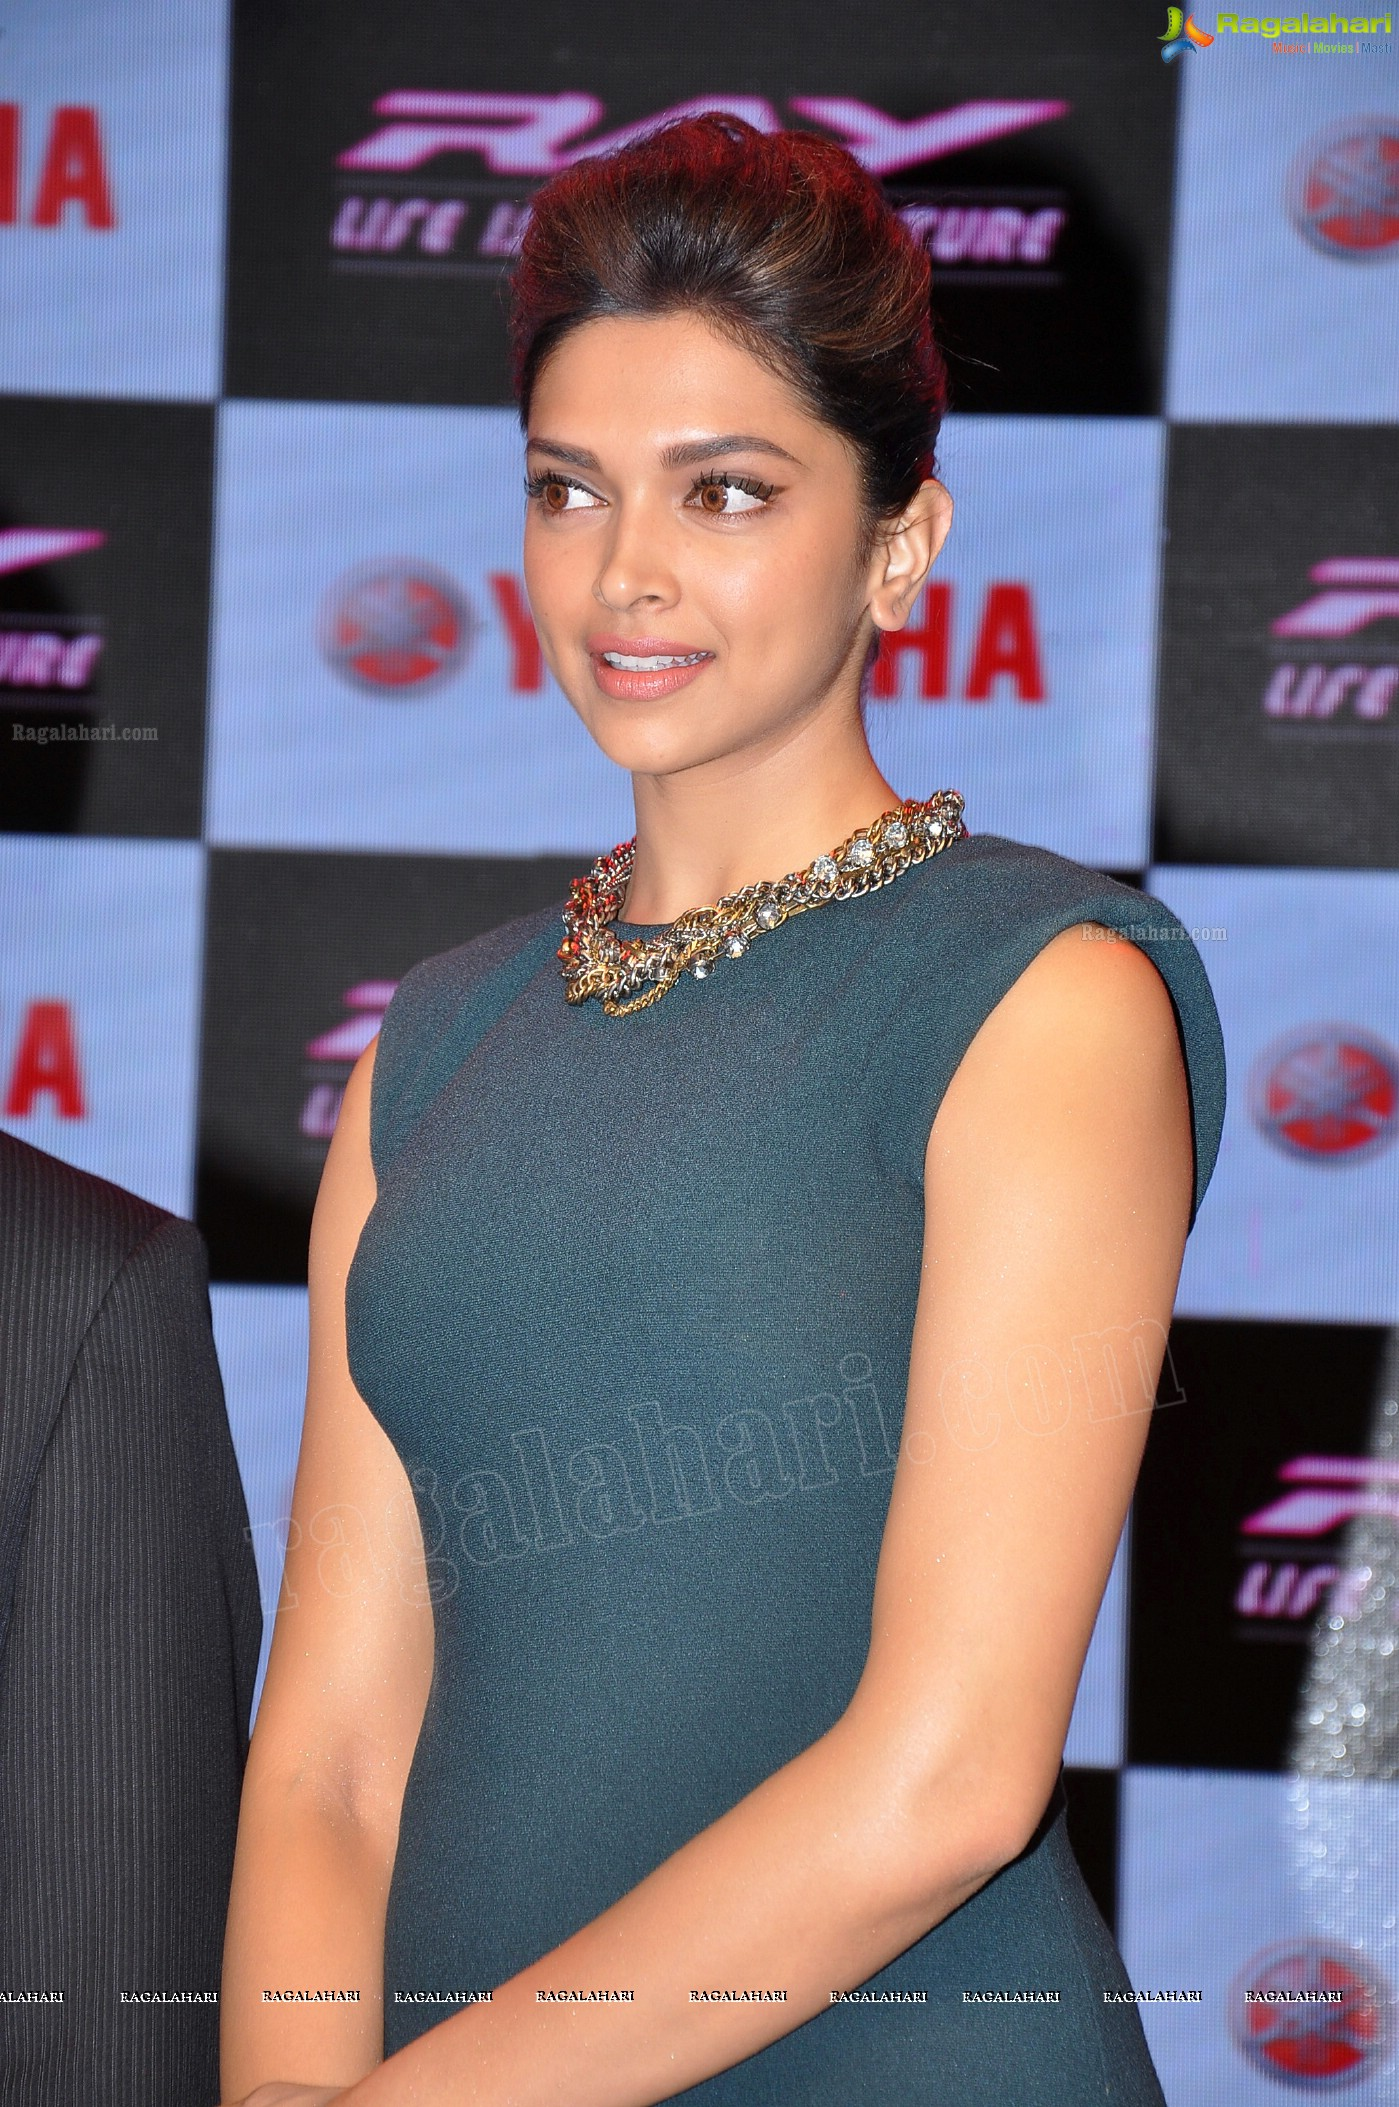 Deepika Padukone (Posters) Image 2 | Telugu Actress Photo ...